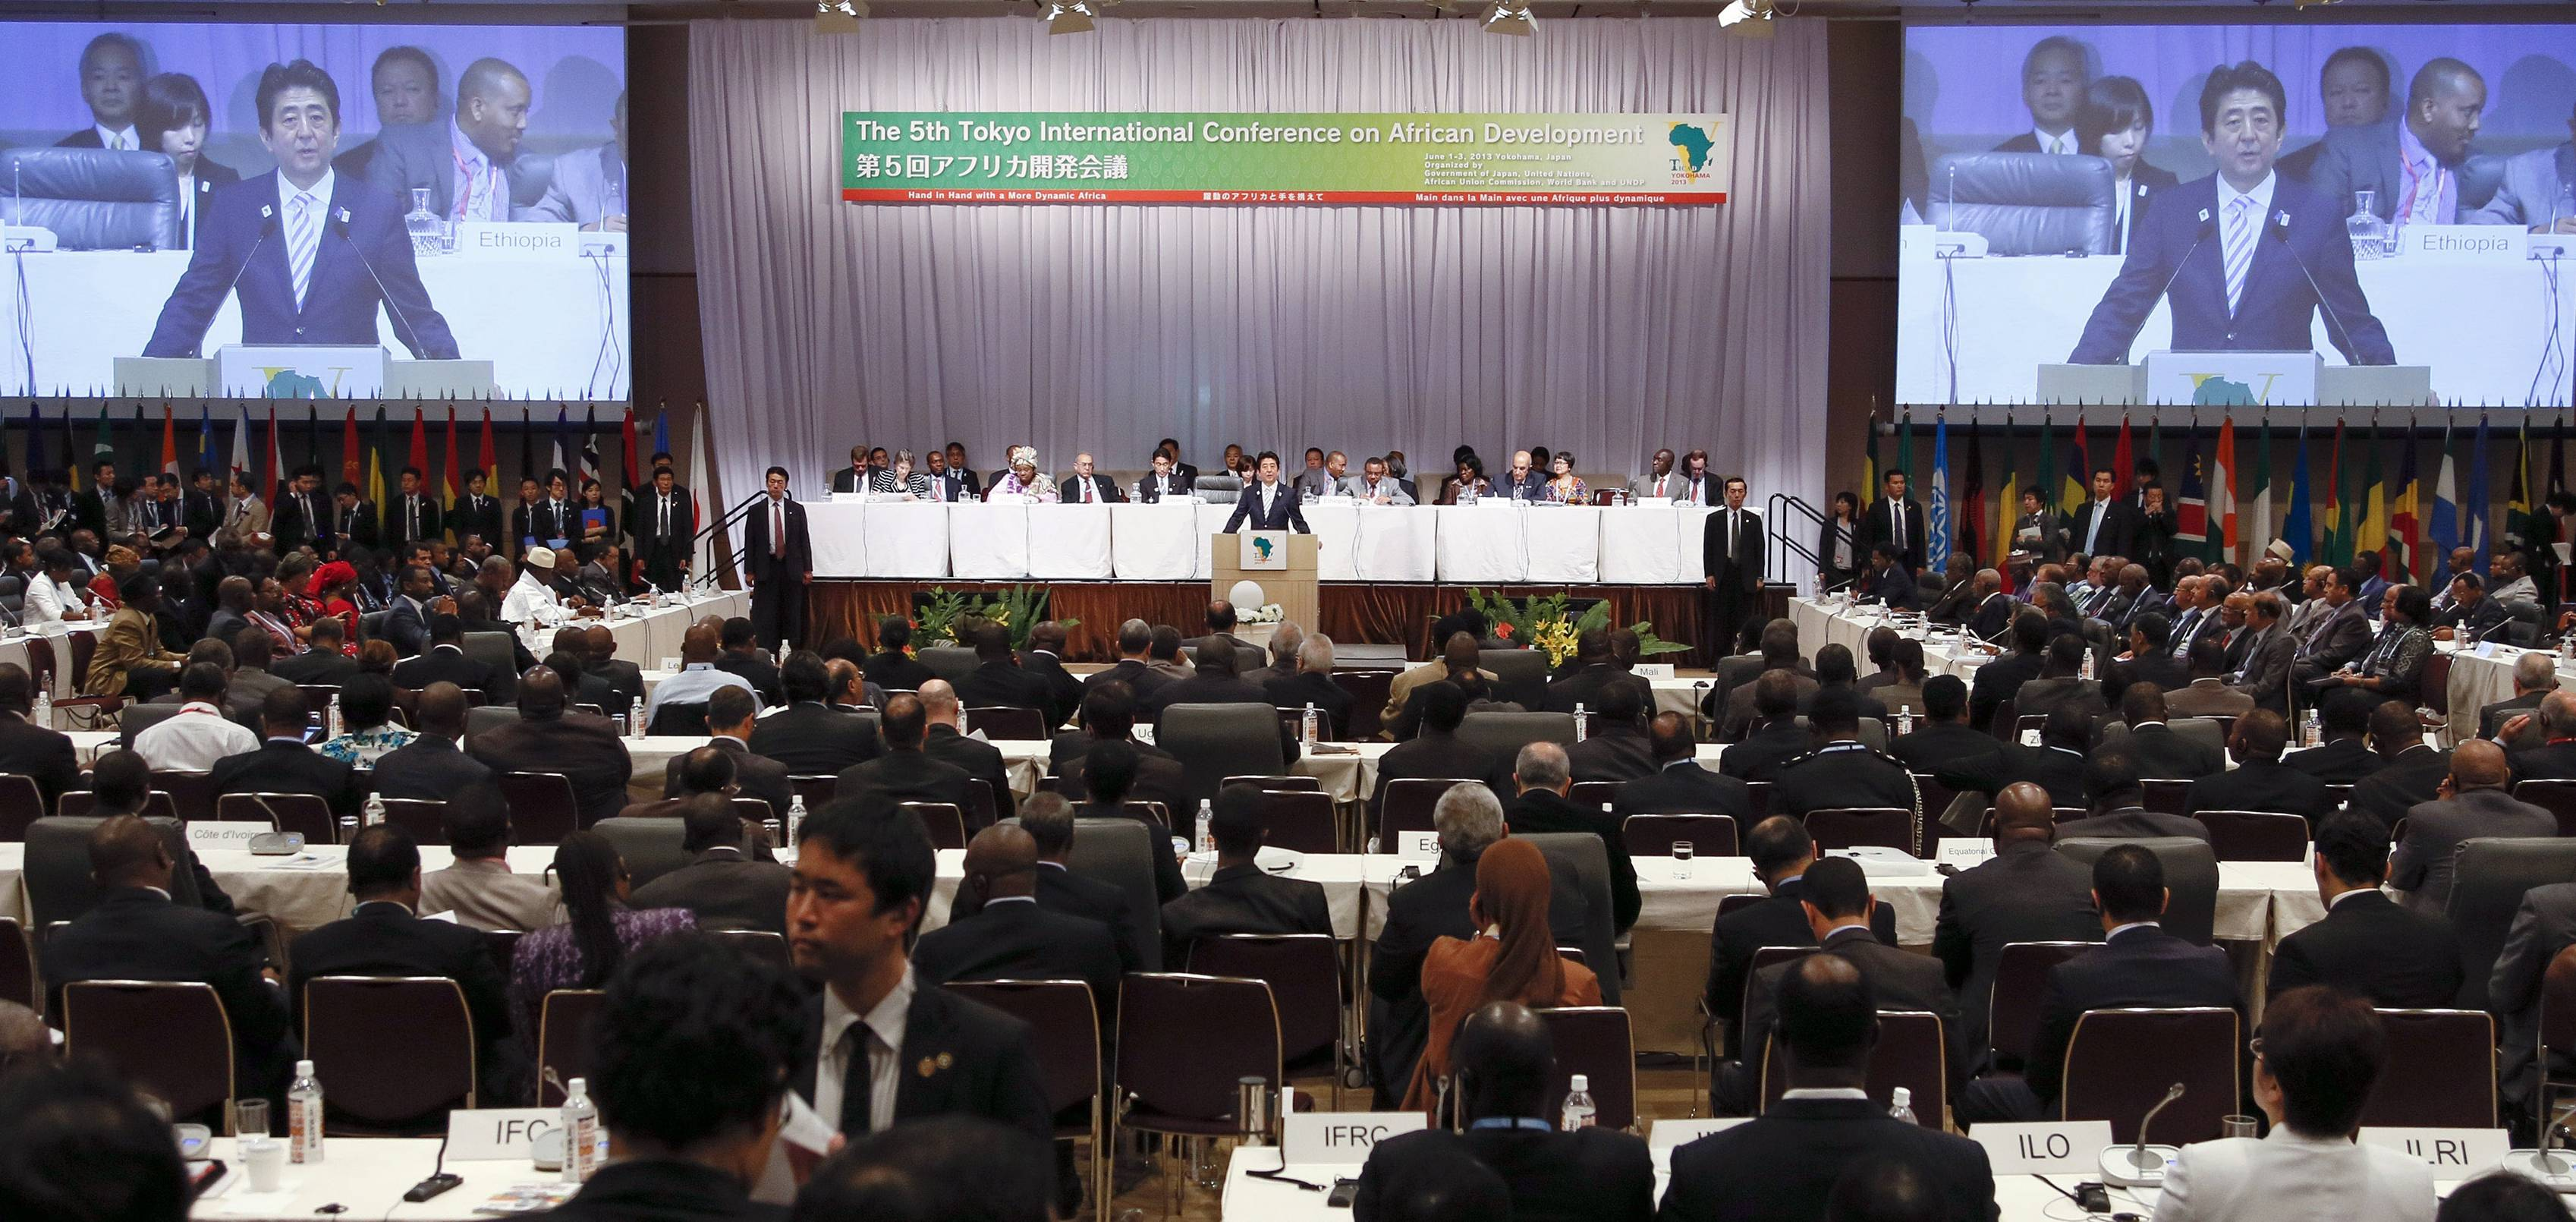 Japan urged to play more visible role on continent